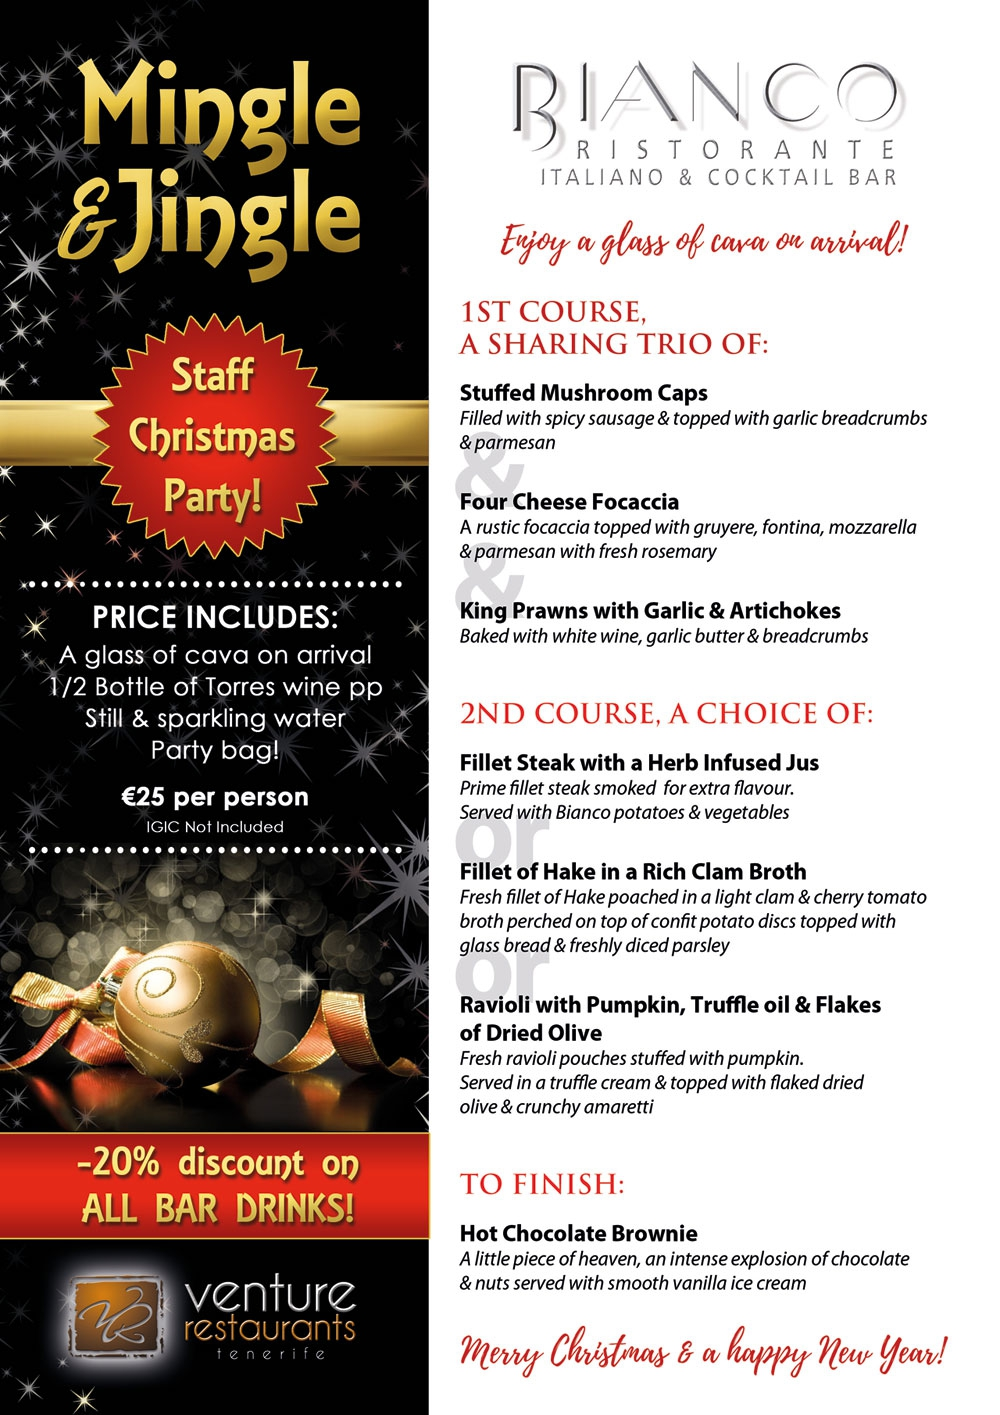 Celebrate Your Staff Christmas Party at Bianco Restaurant